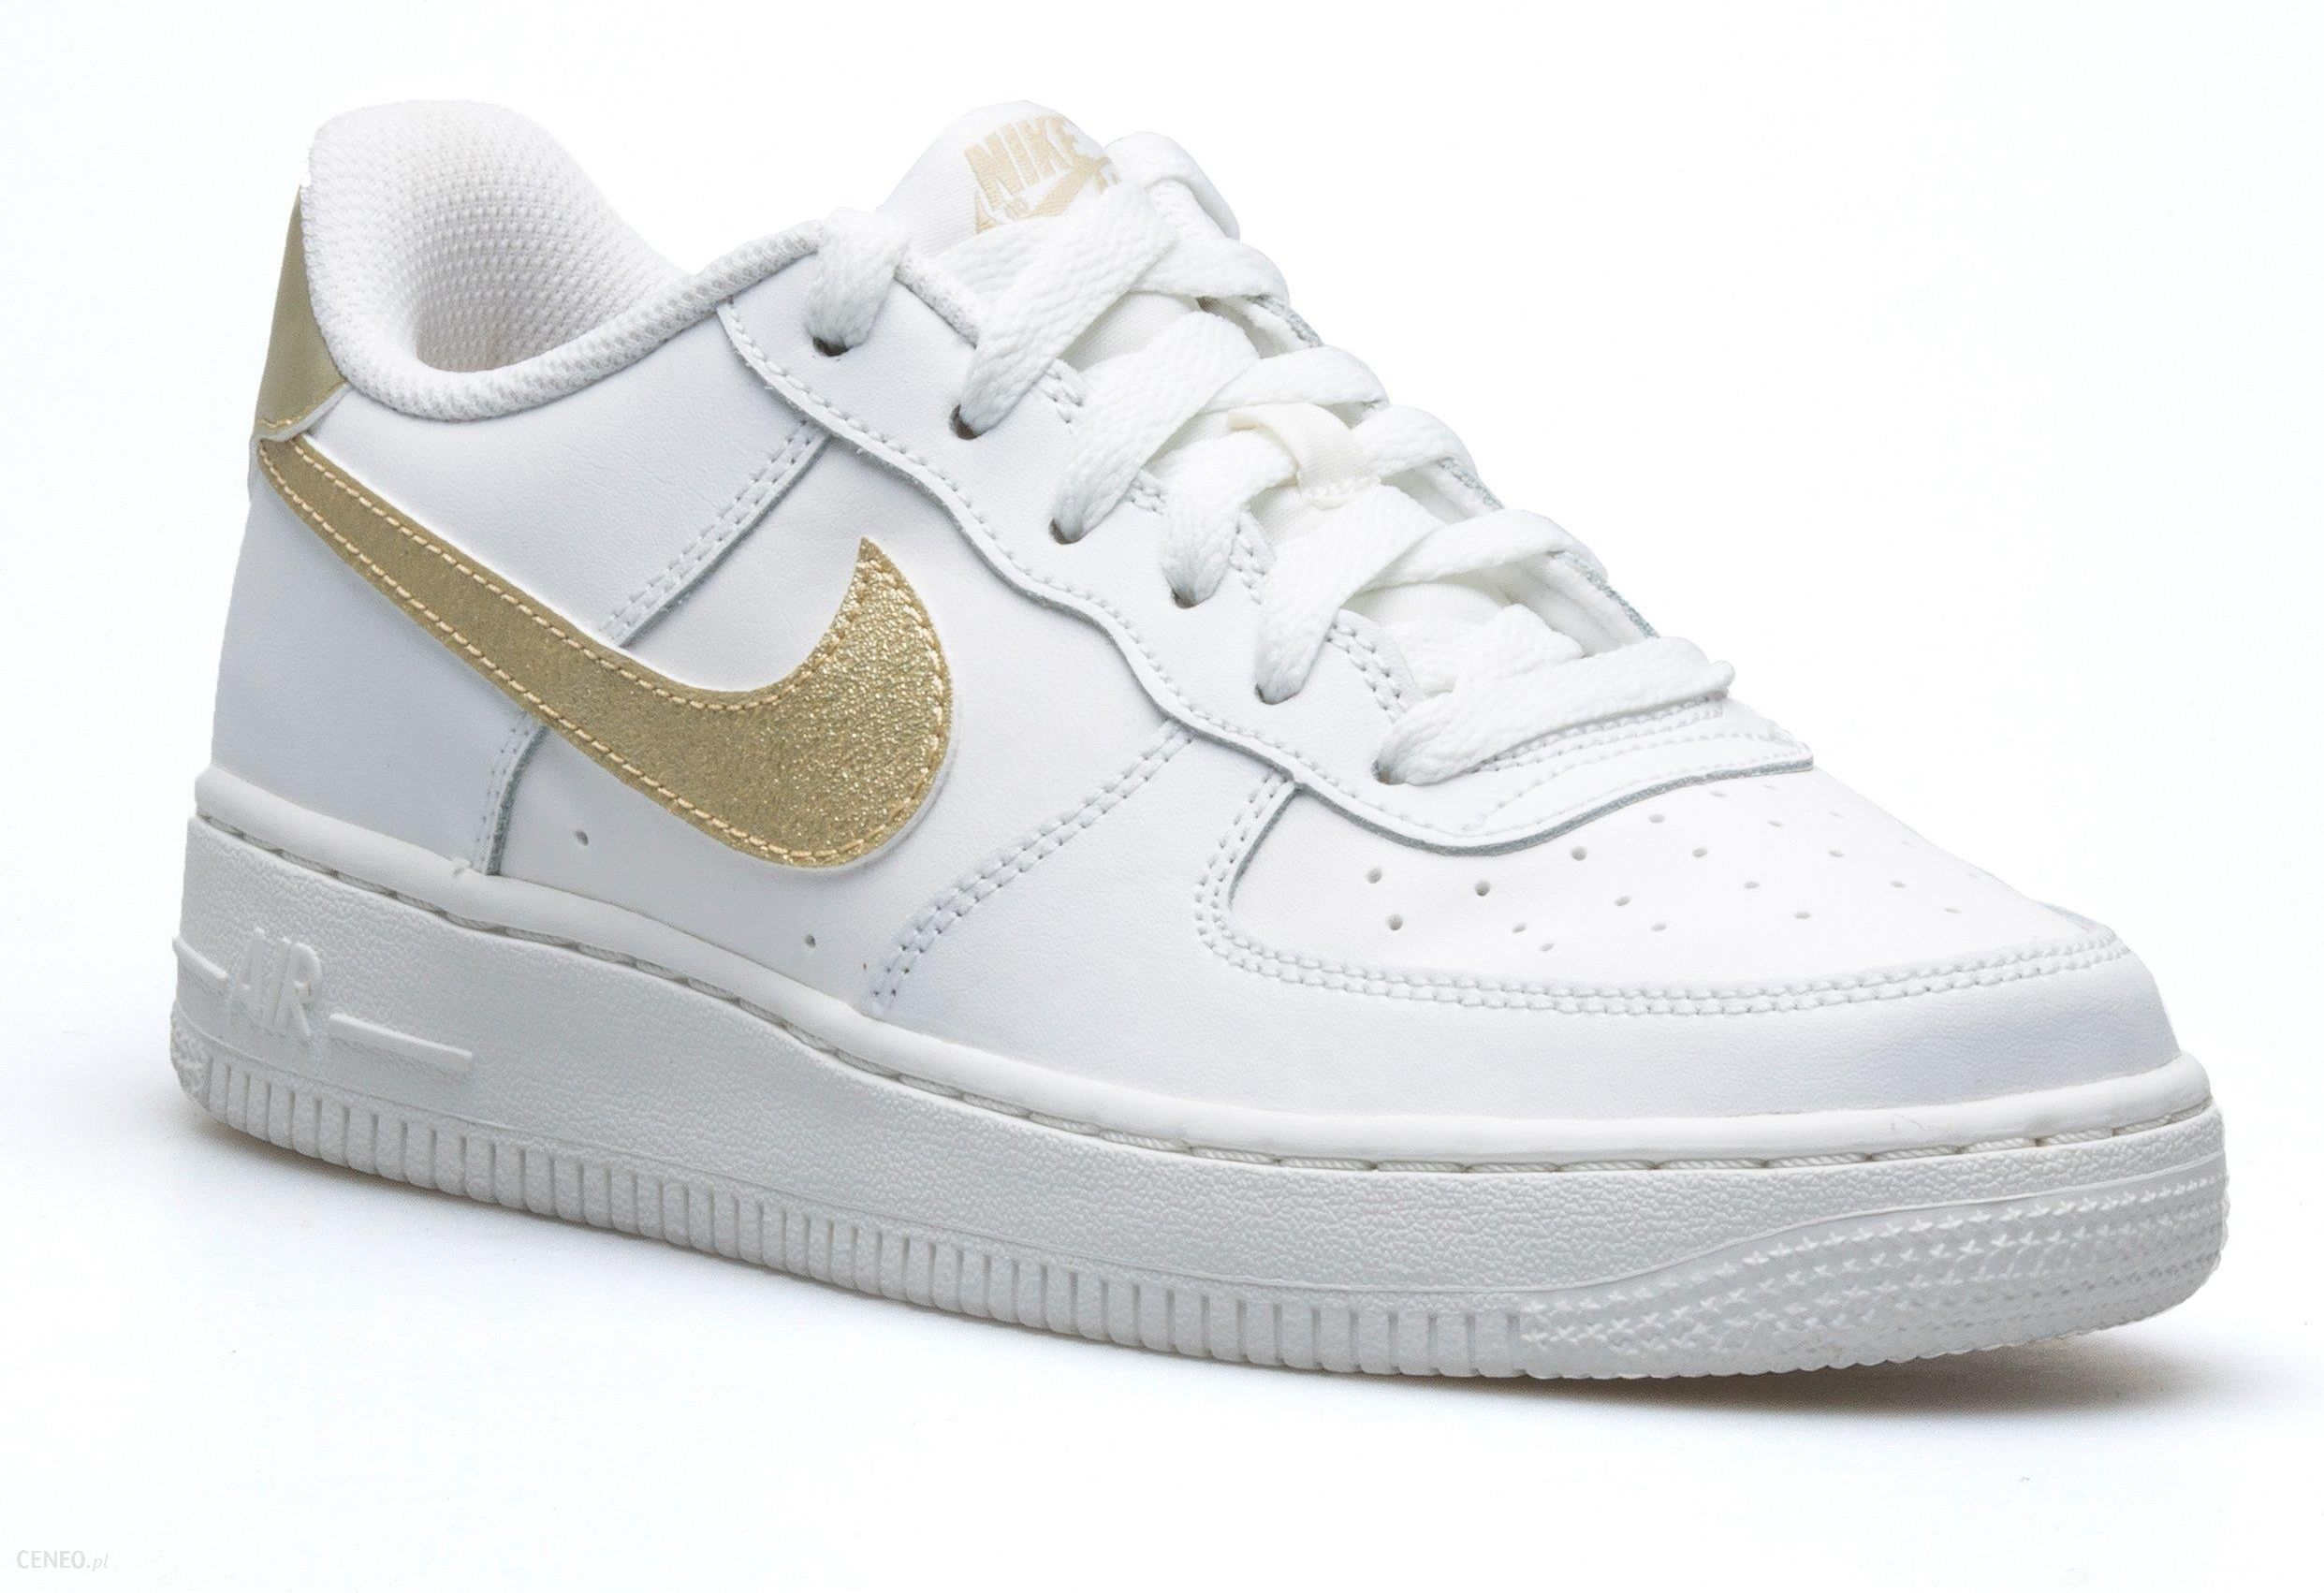 Buty Nike Air Force 1 (gs) 314219 127 r. 36,5 Ceny i opinie Ceneo.pl